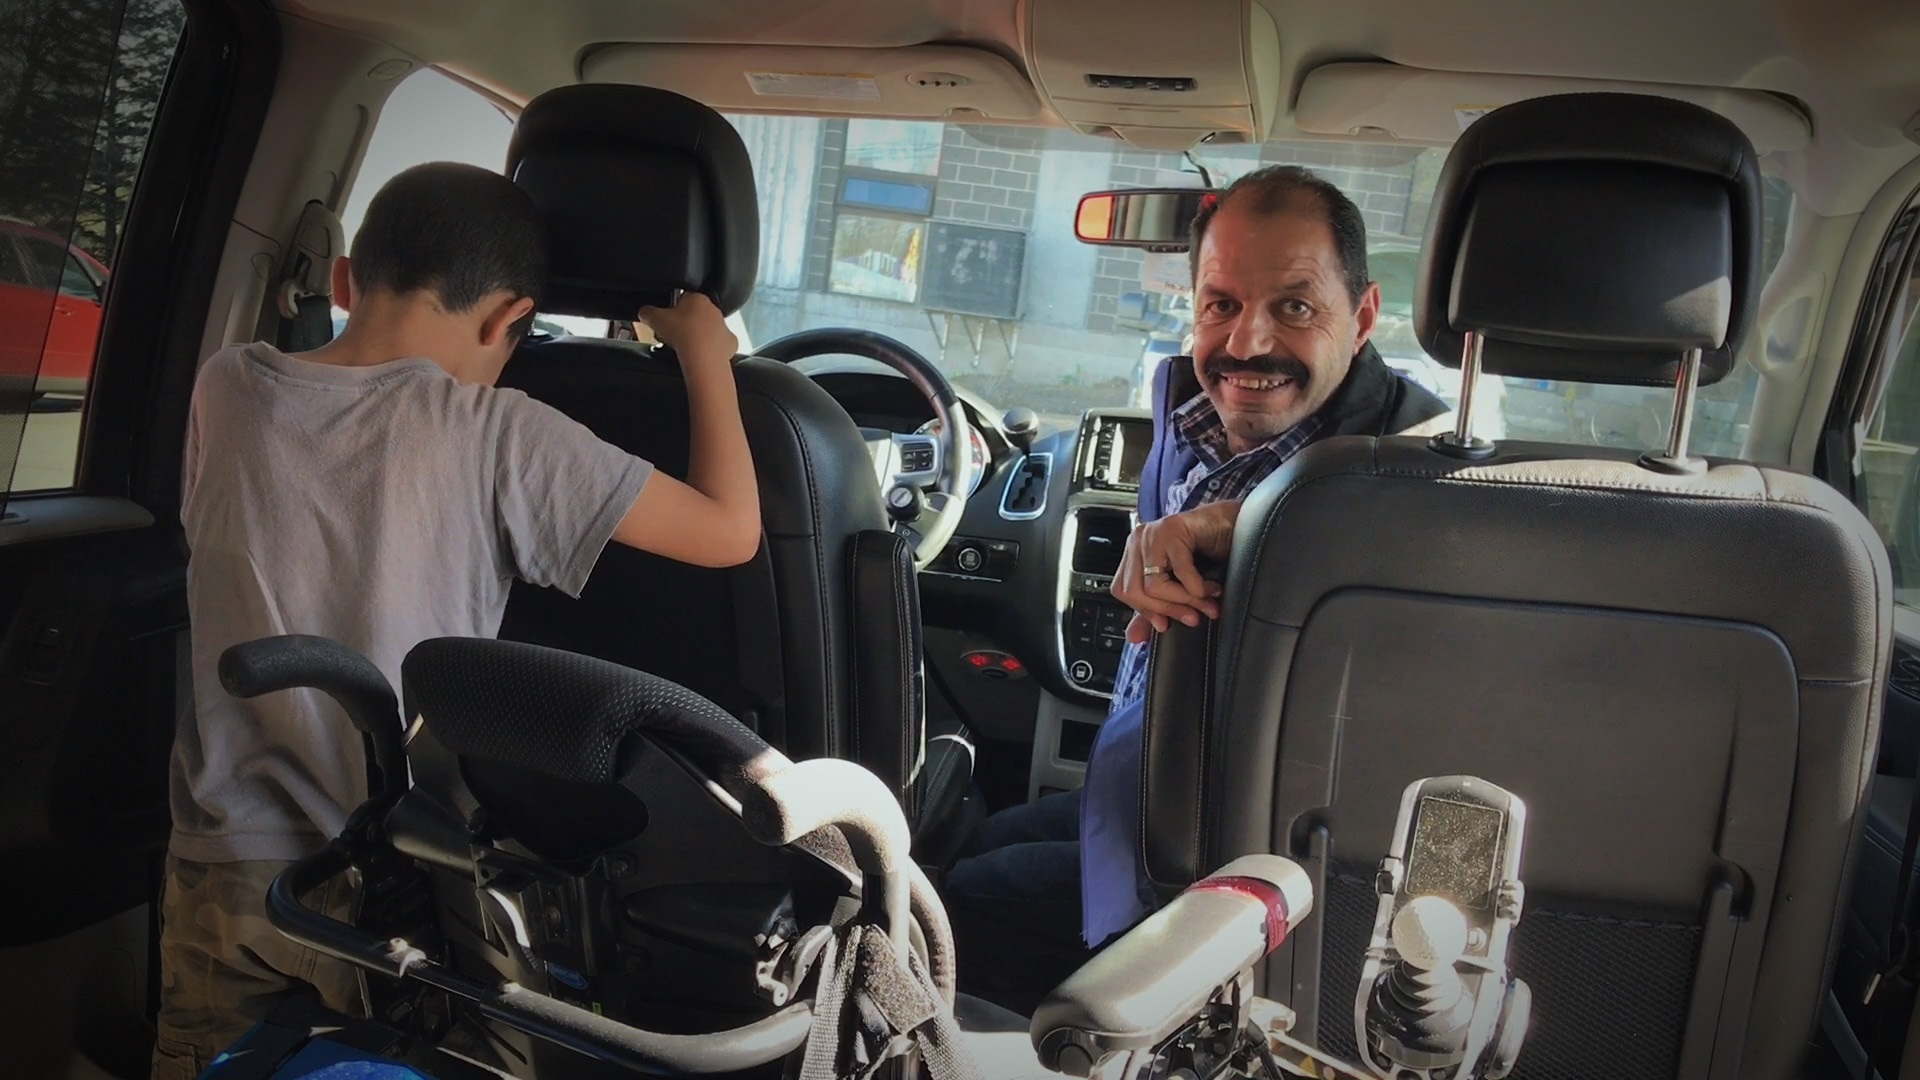 Mohammad and Younes in the van. (Dave Irish/CBC)